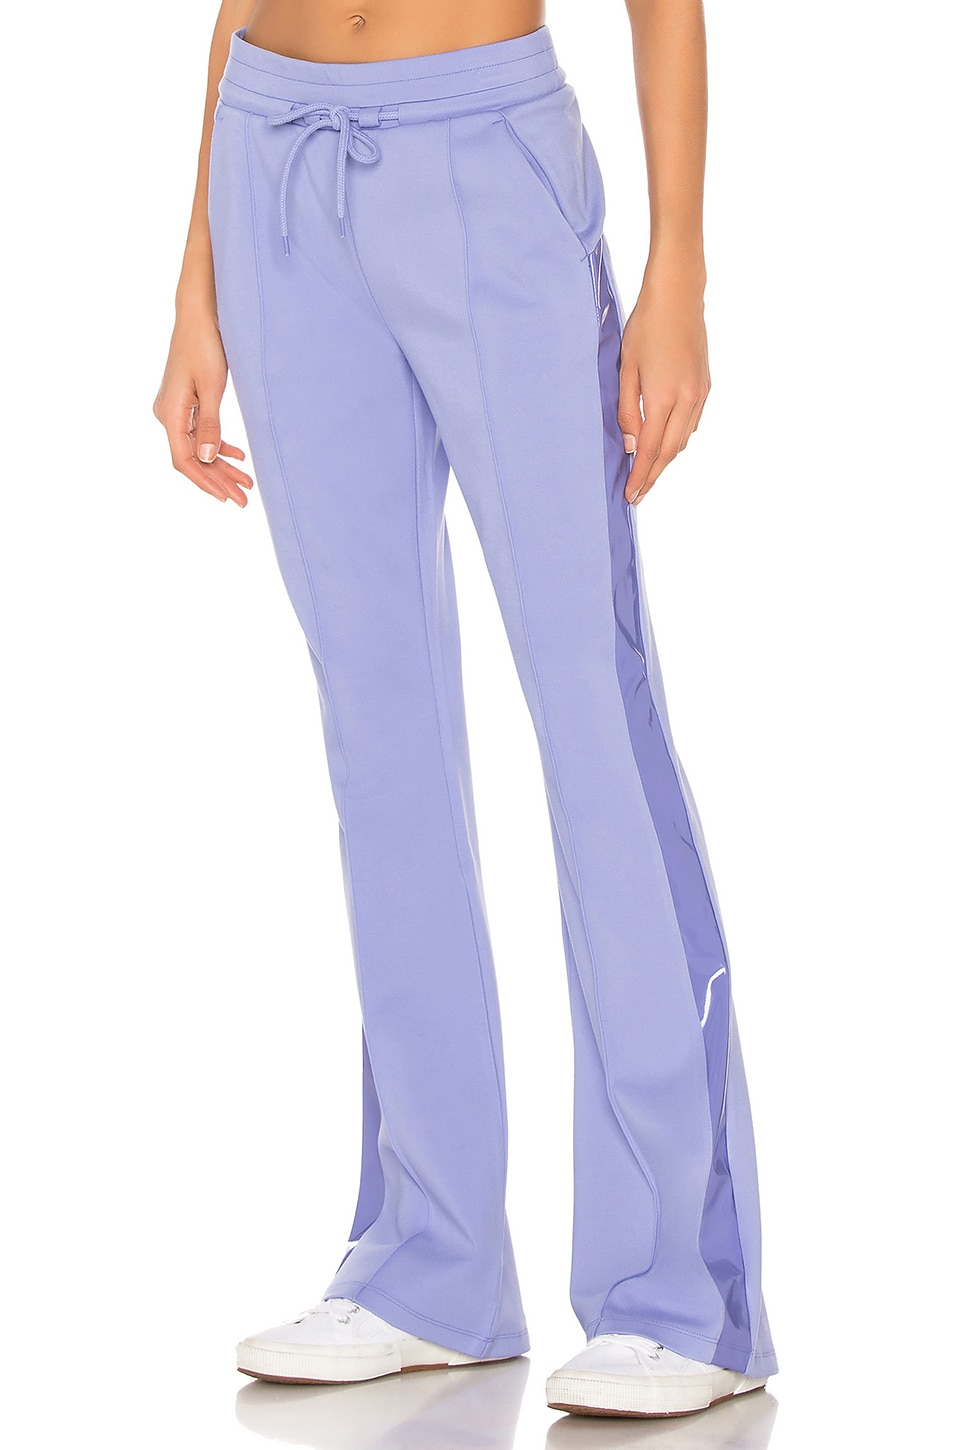 Nylora Madison Pants in Periwinkle